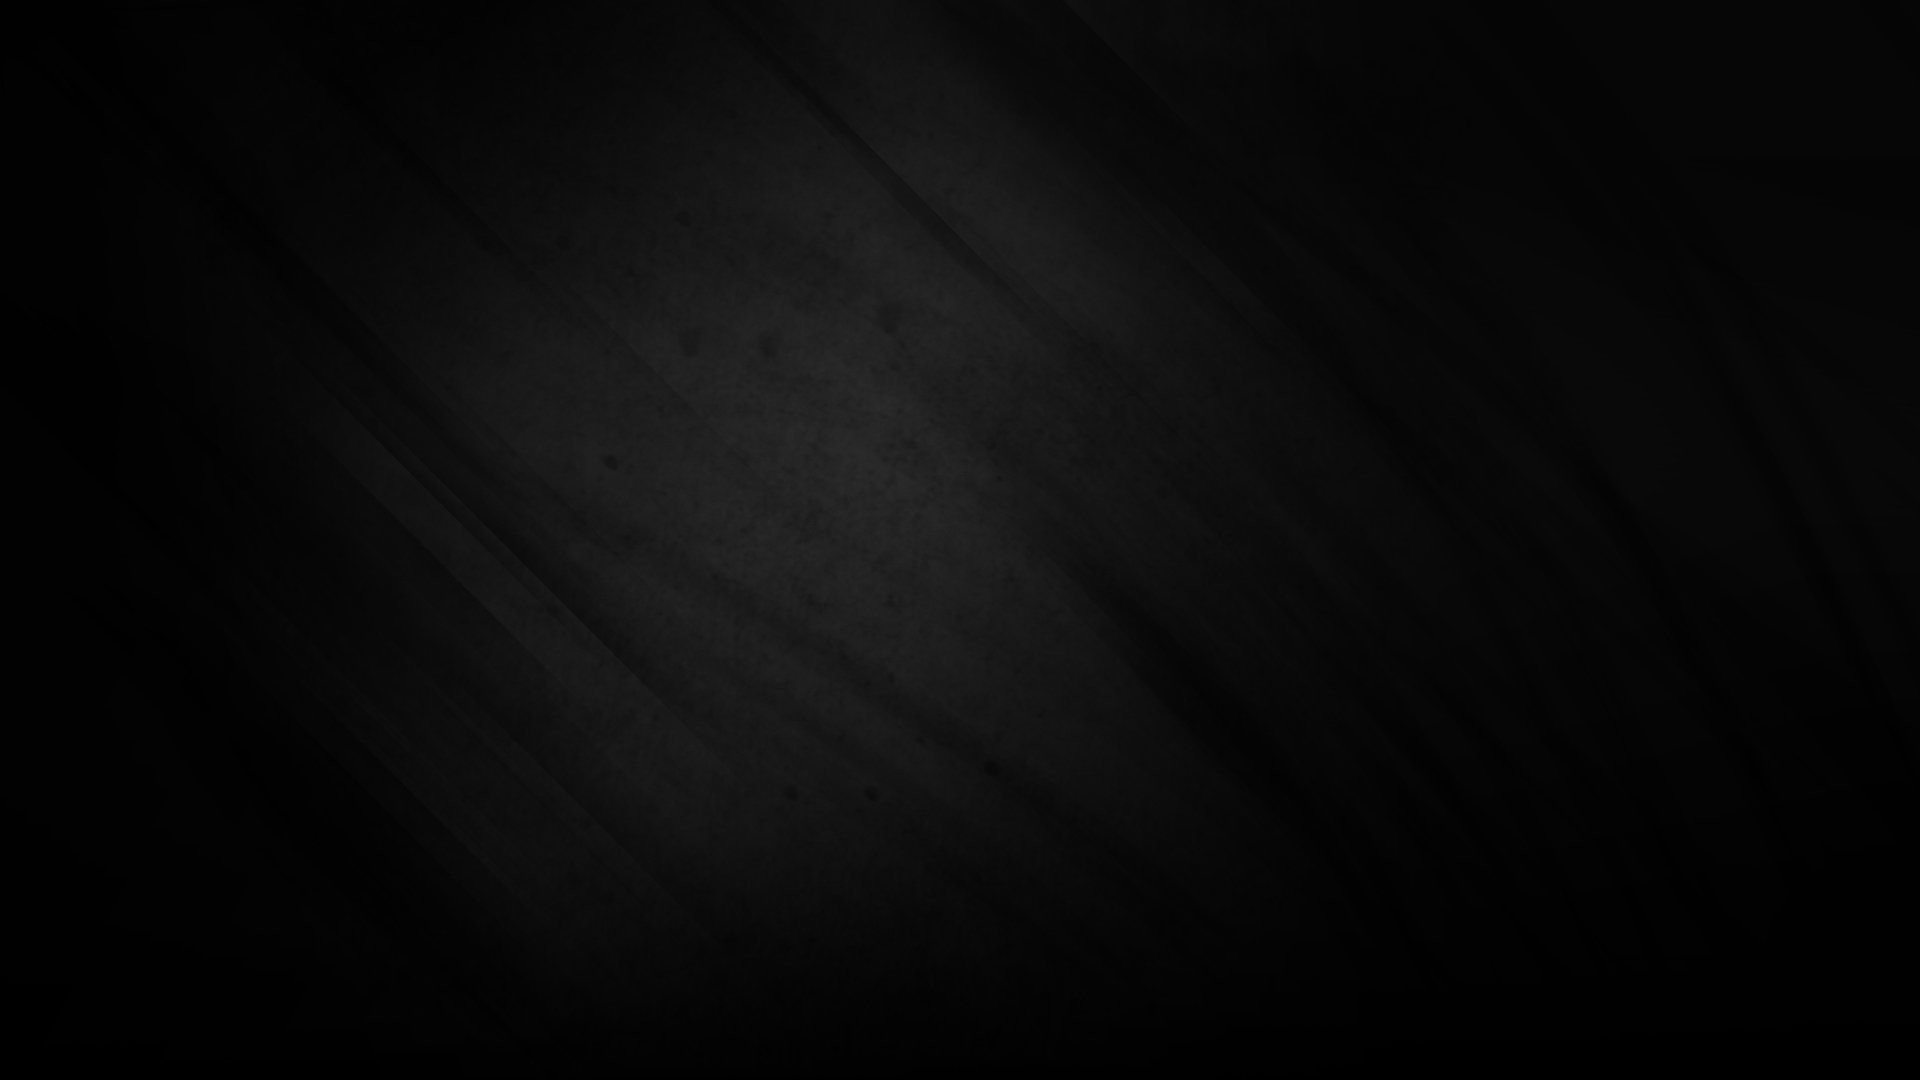 68 Glossy Black Wallpapers on WallpaperPlay 1920x1080